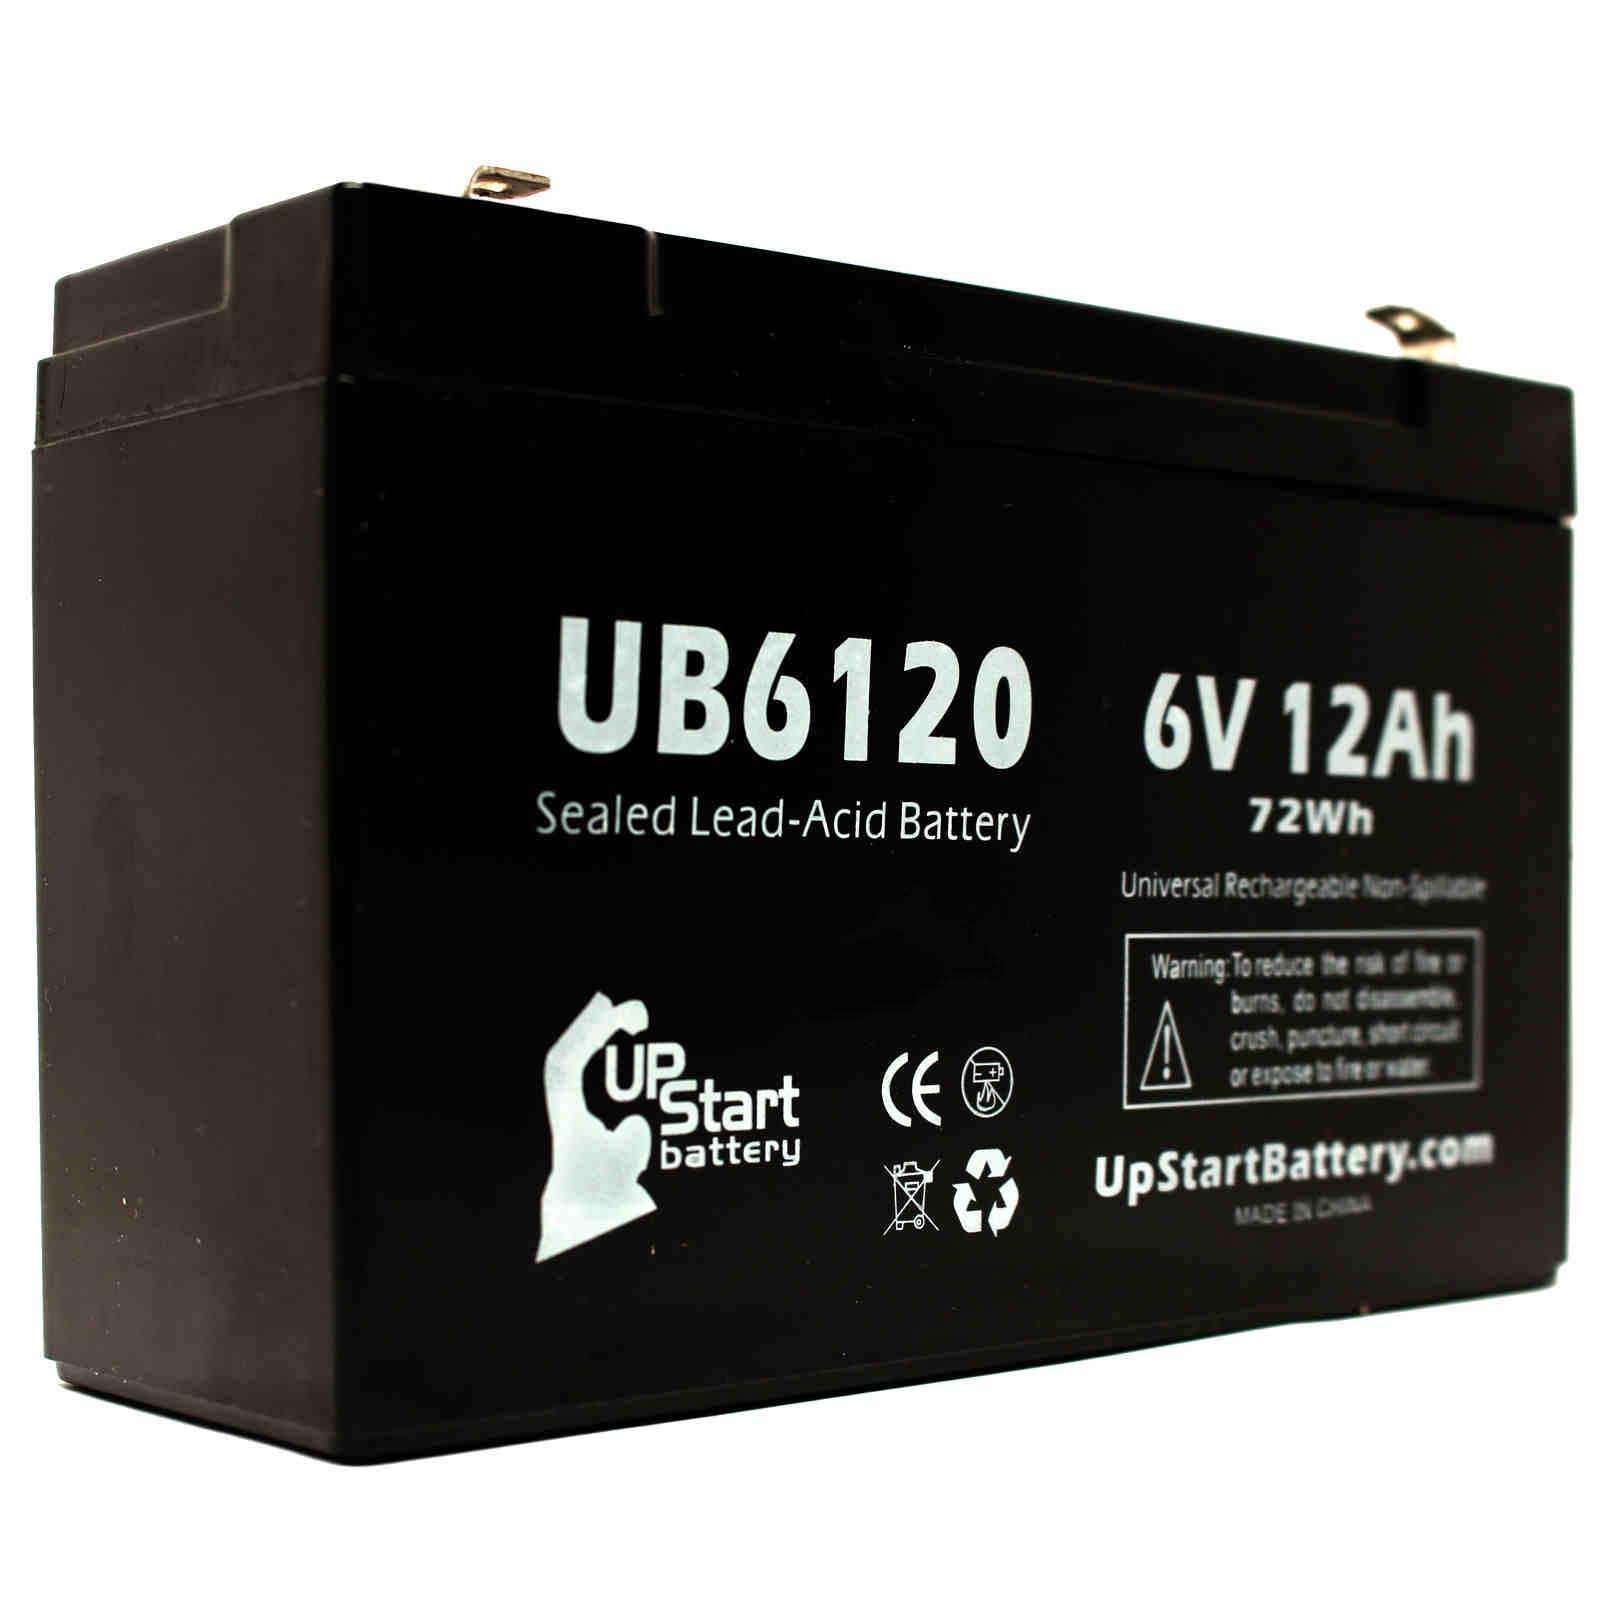 5x Pack - ACCESS BATTERY SLA6100 Battery Replacement - UB6120 Universal Sealed Lead Acid Battery (6V, 12Ah, 12000mAh, F1 Terminal, AGM, SLA) - Includes 10 F1 to F2 Terminal Adapters - image 2 de 4